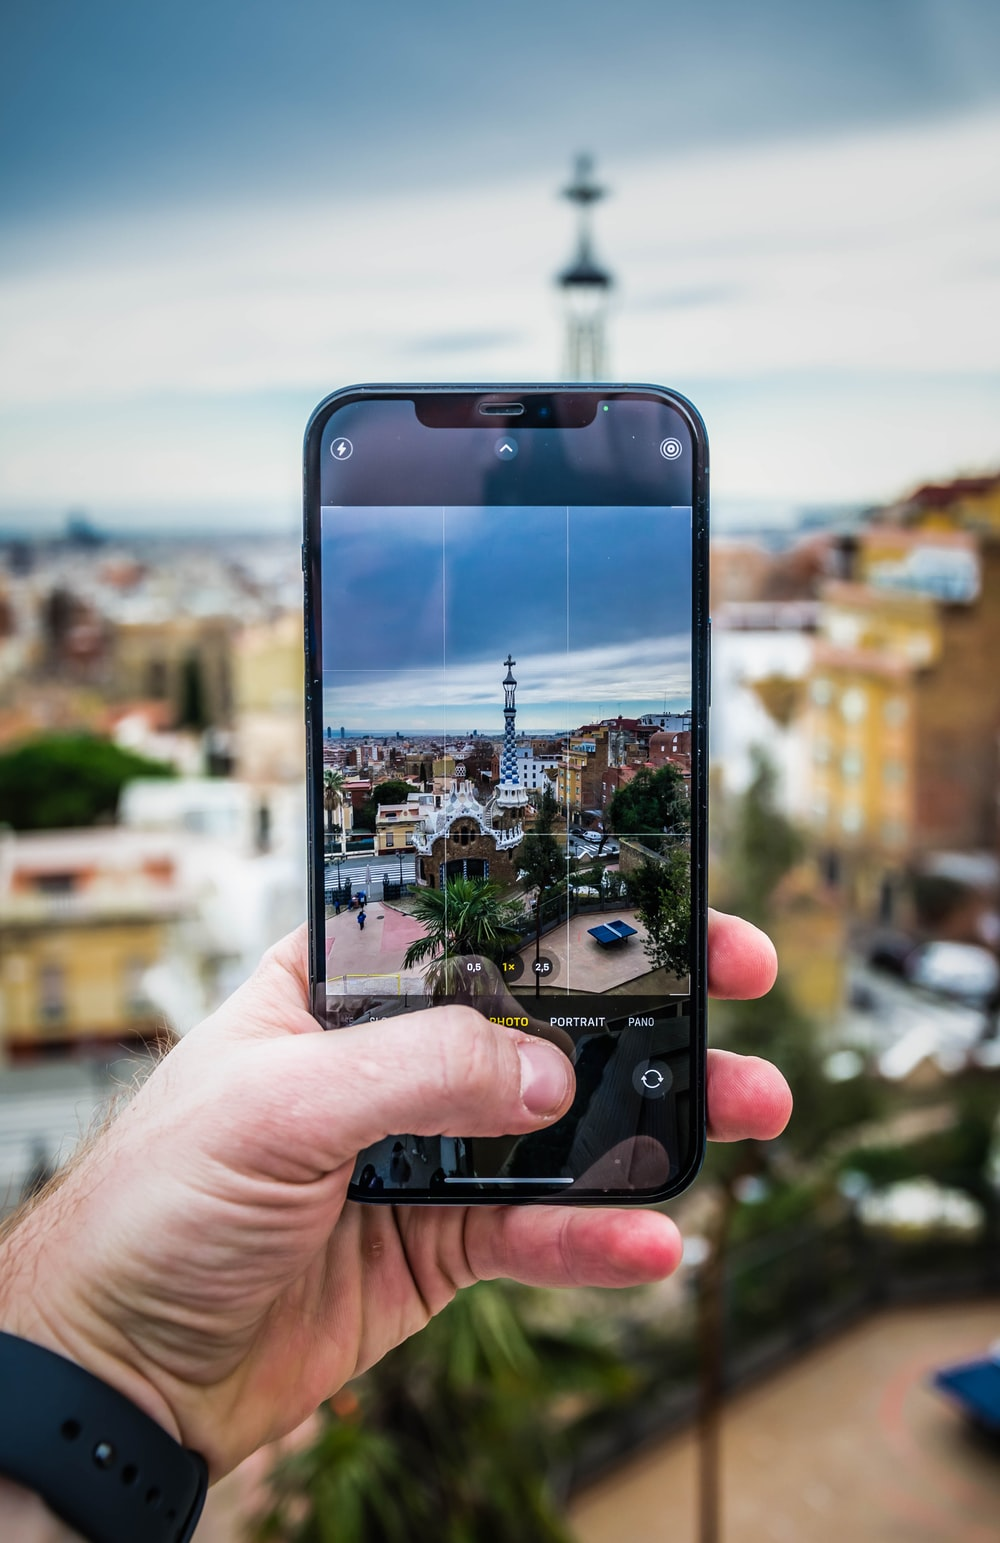 person holding iphone taking photo of city buildings during daytime